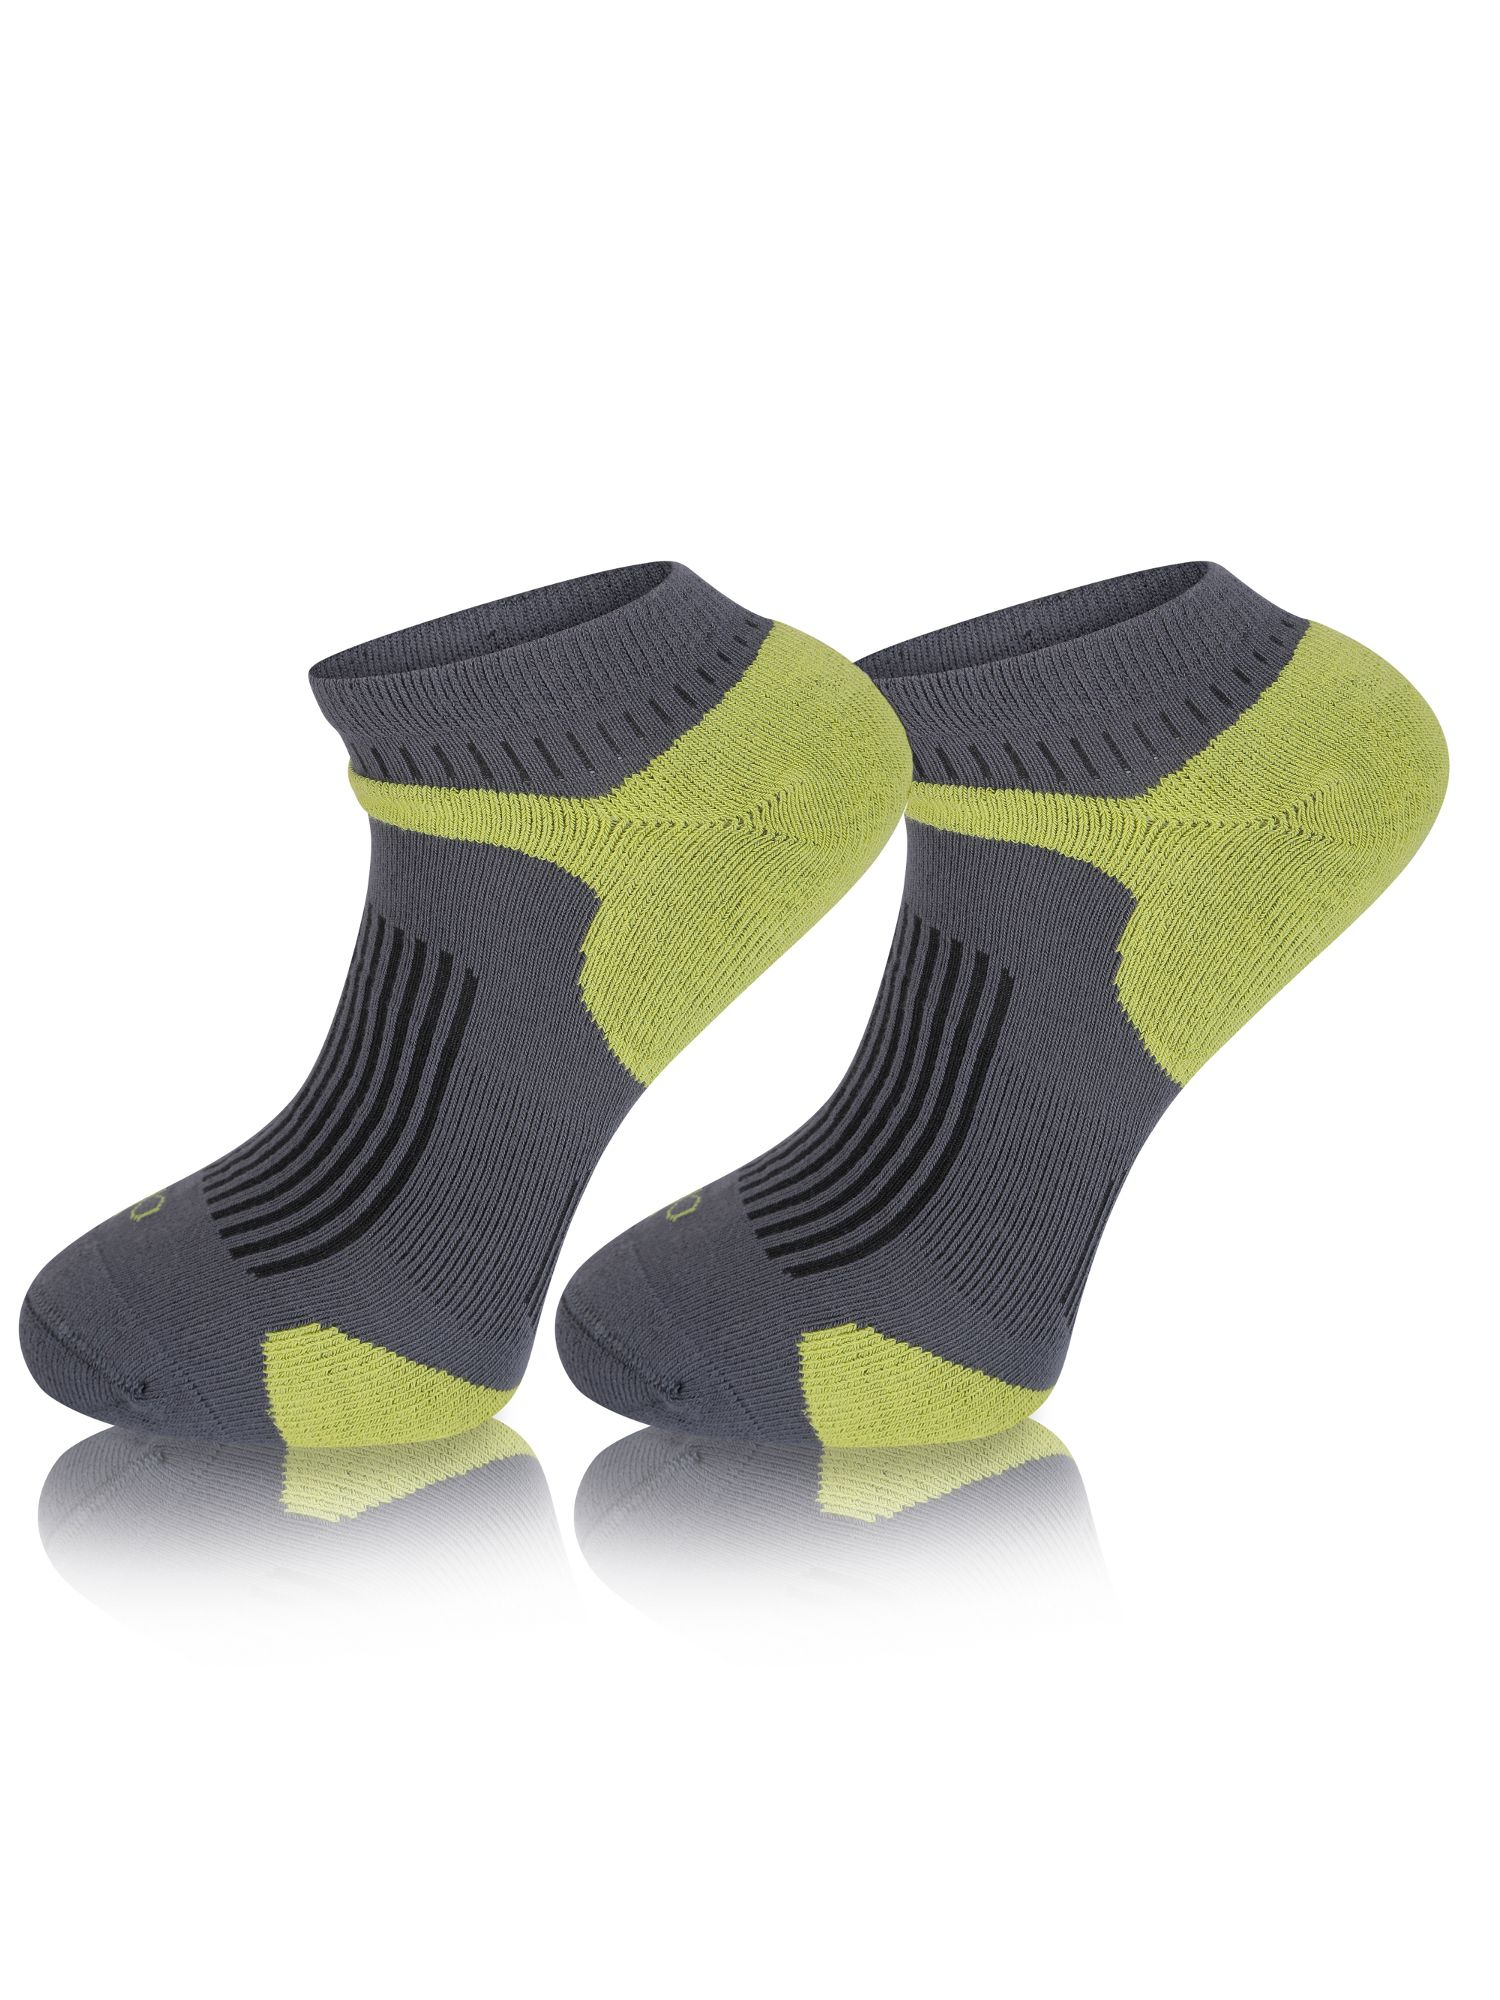 Ankle tech socks 2 pack